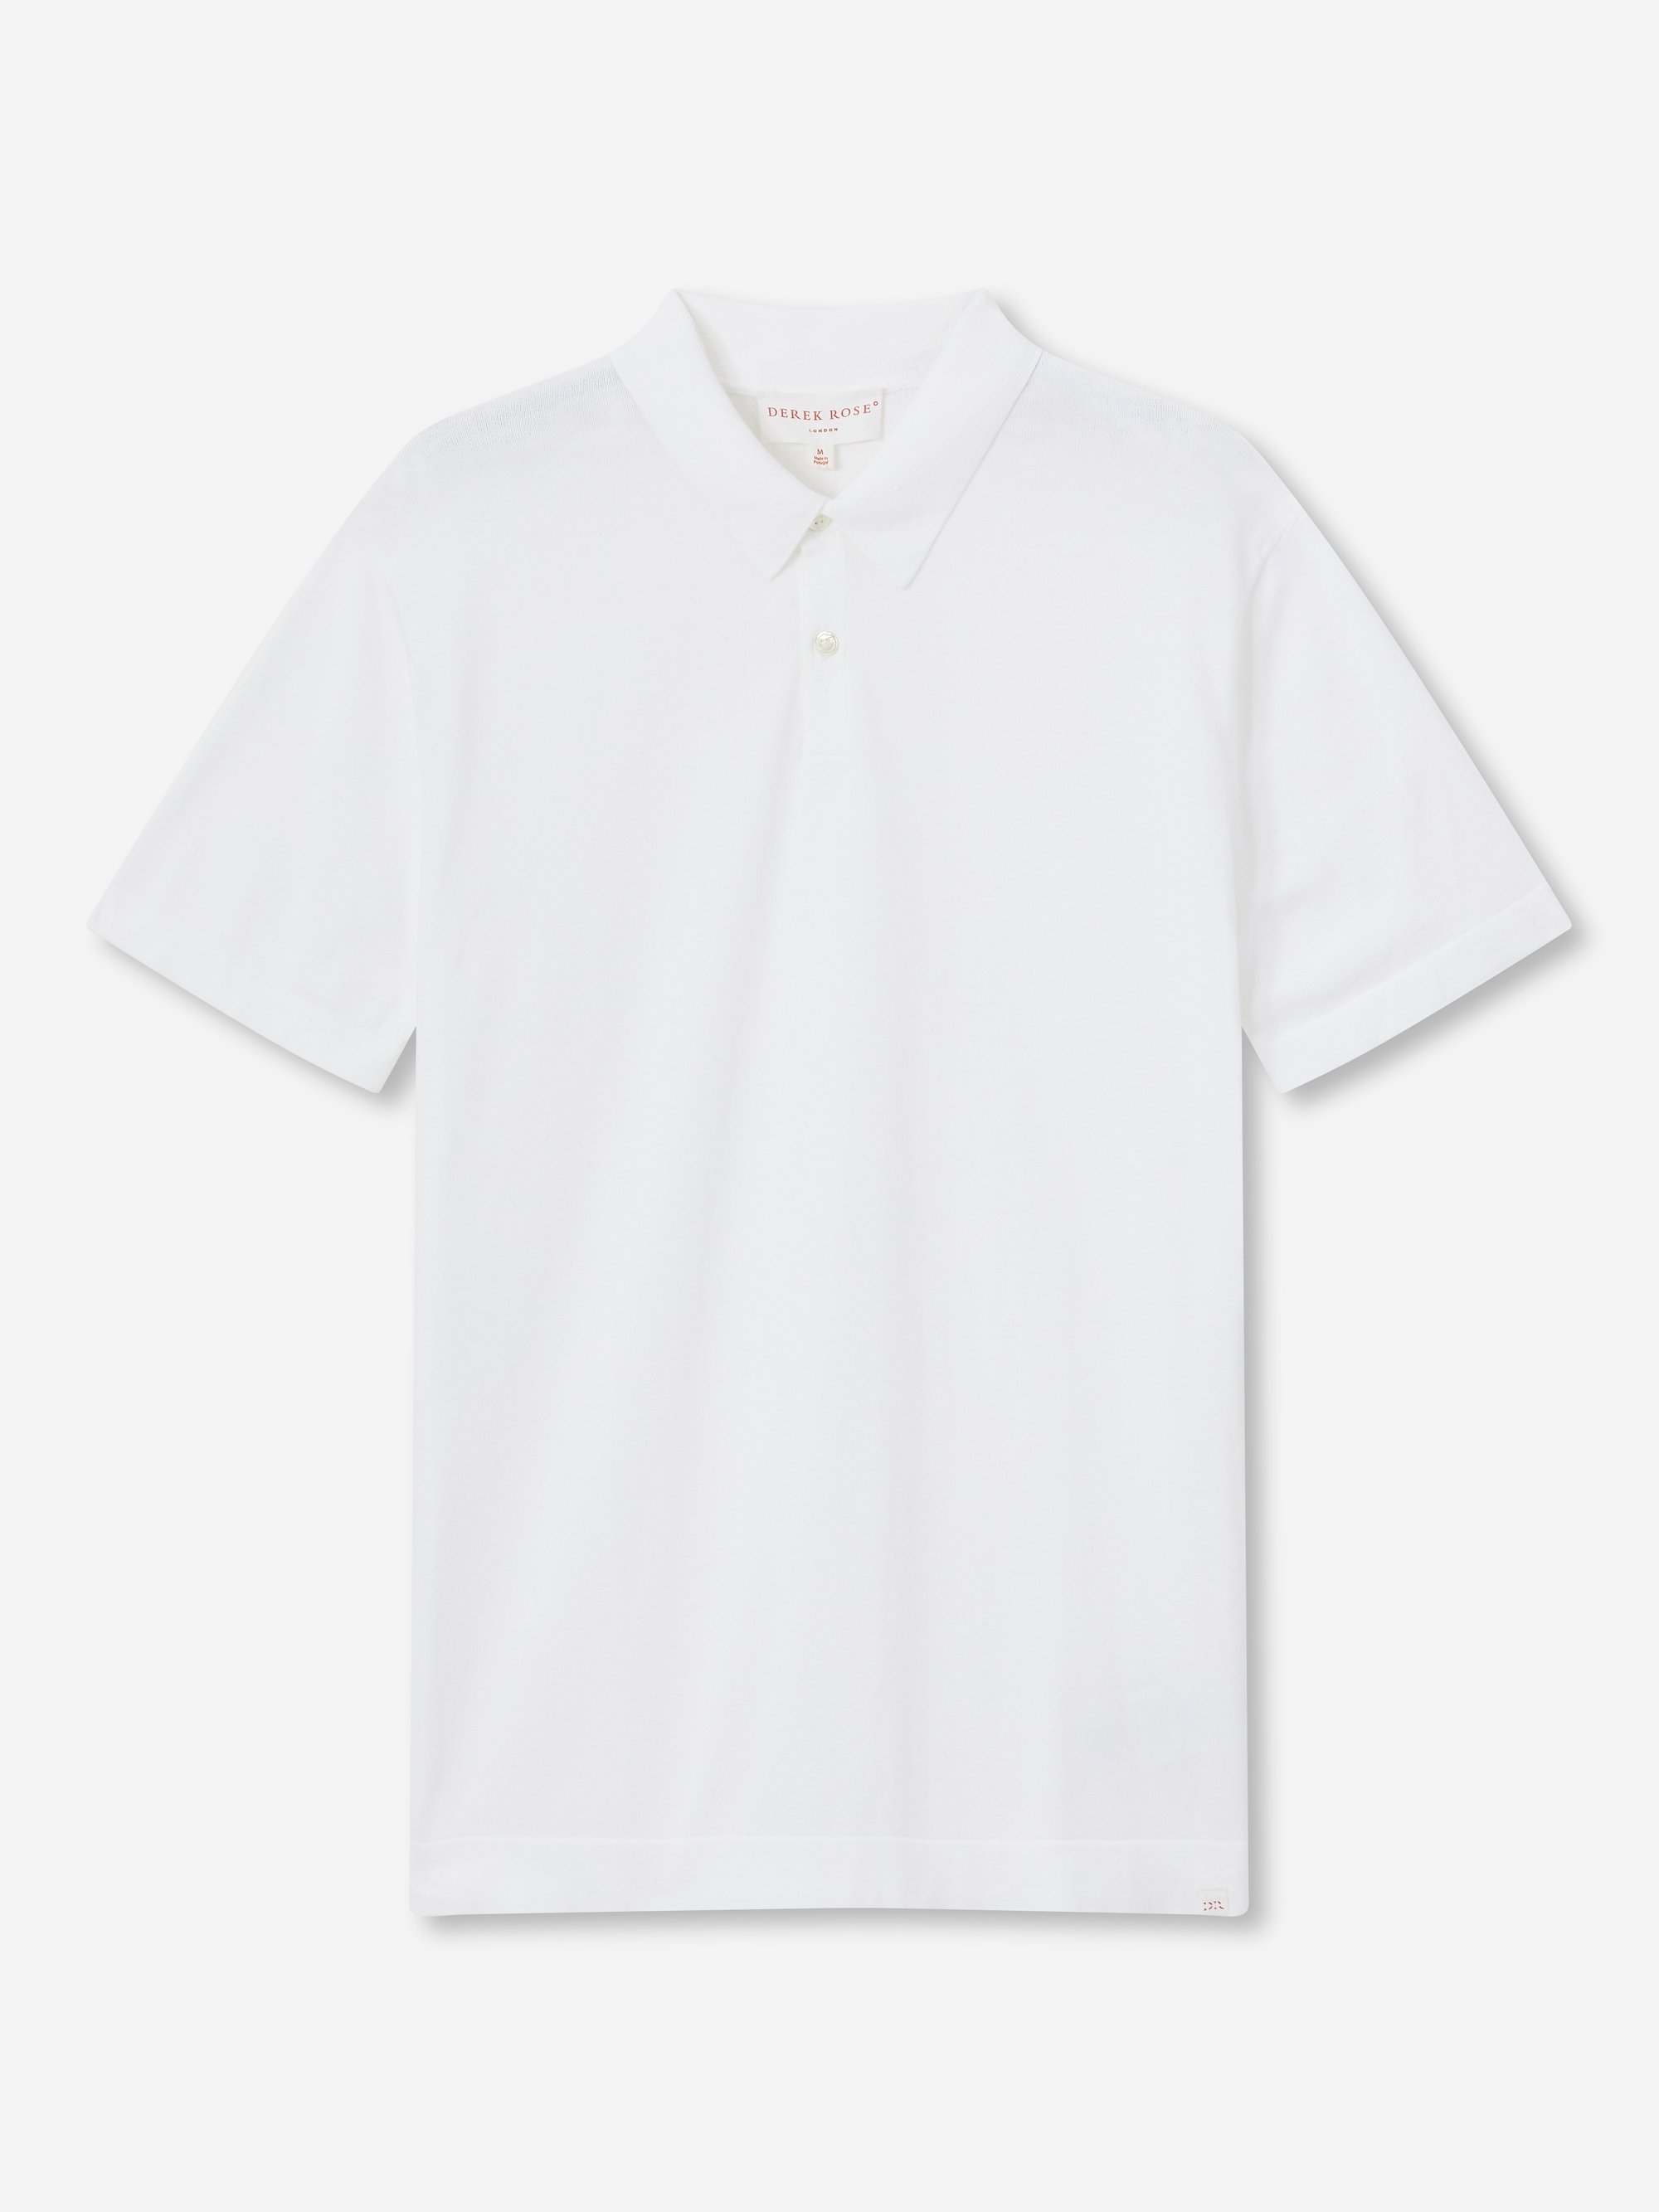 Men's Short Sleeve Polo Shirt Jacob Sea Island Cotton White